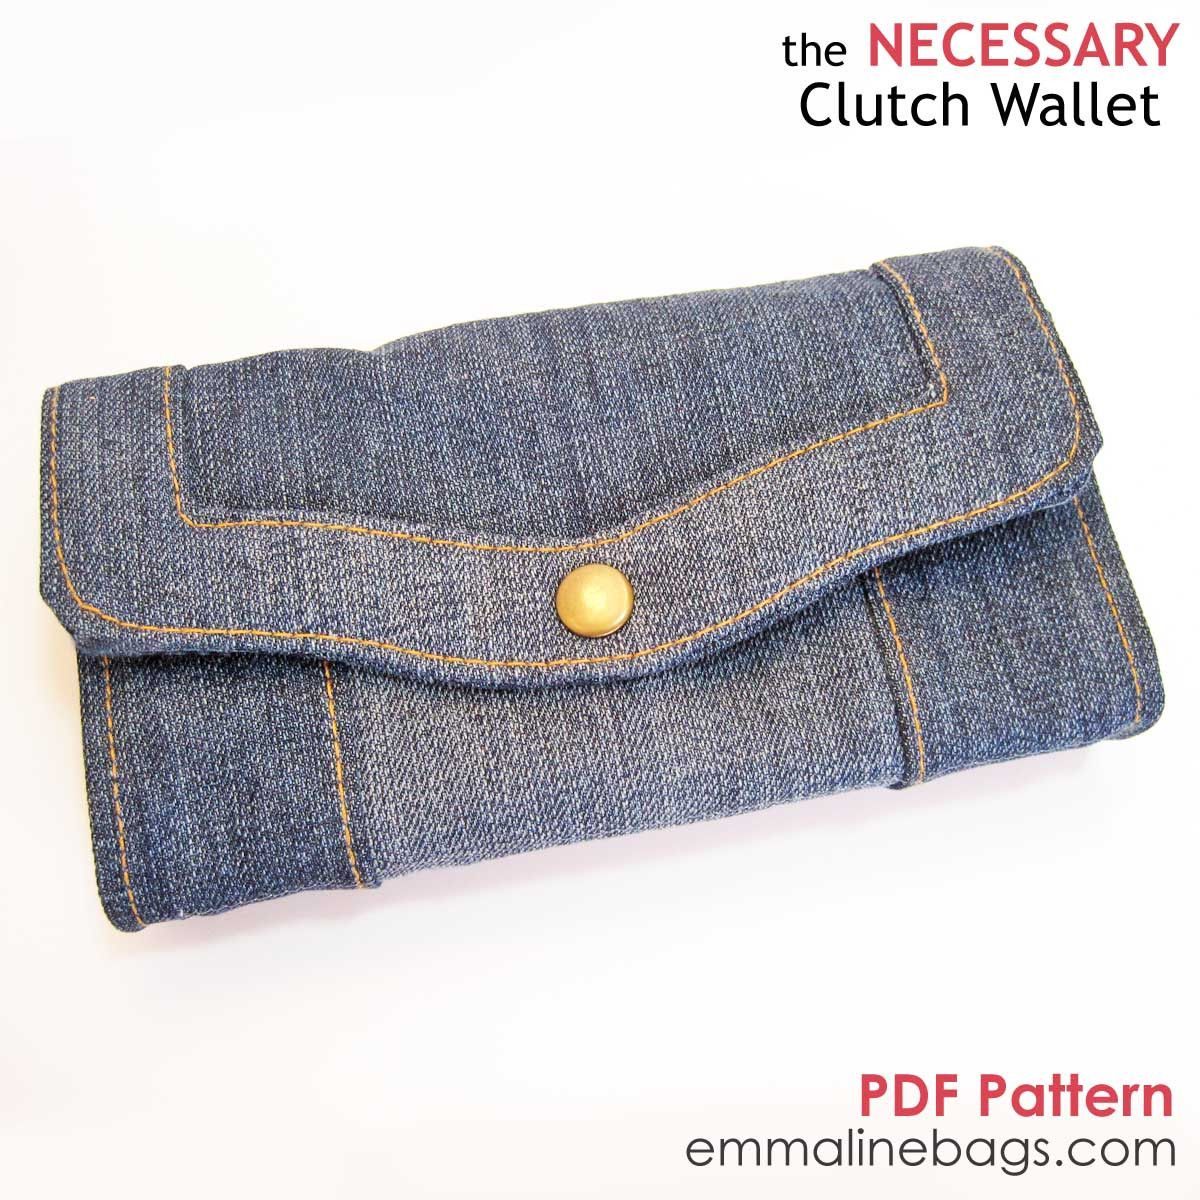 Pdf the necessary clutch wallet carteiras pinterest clutch explore wallet sewing pattern and more jeuxipadfo Choice Image